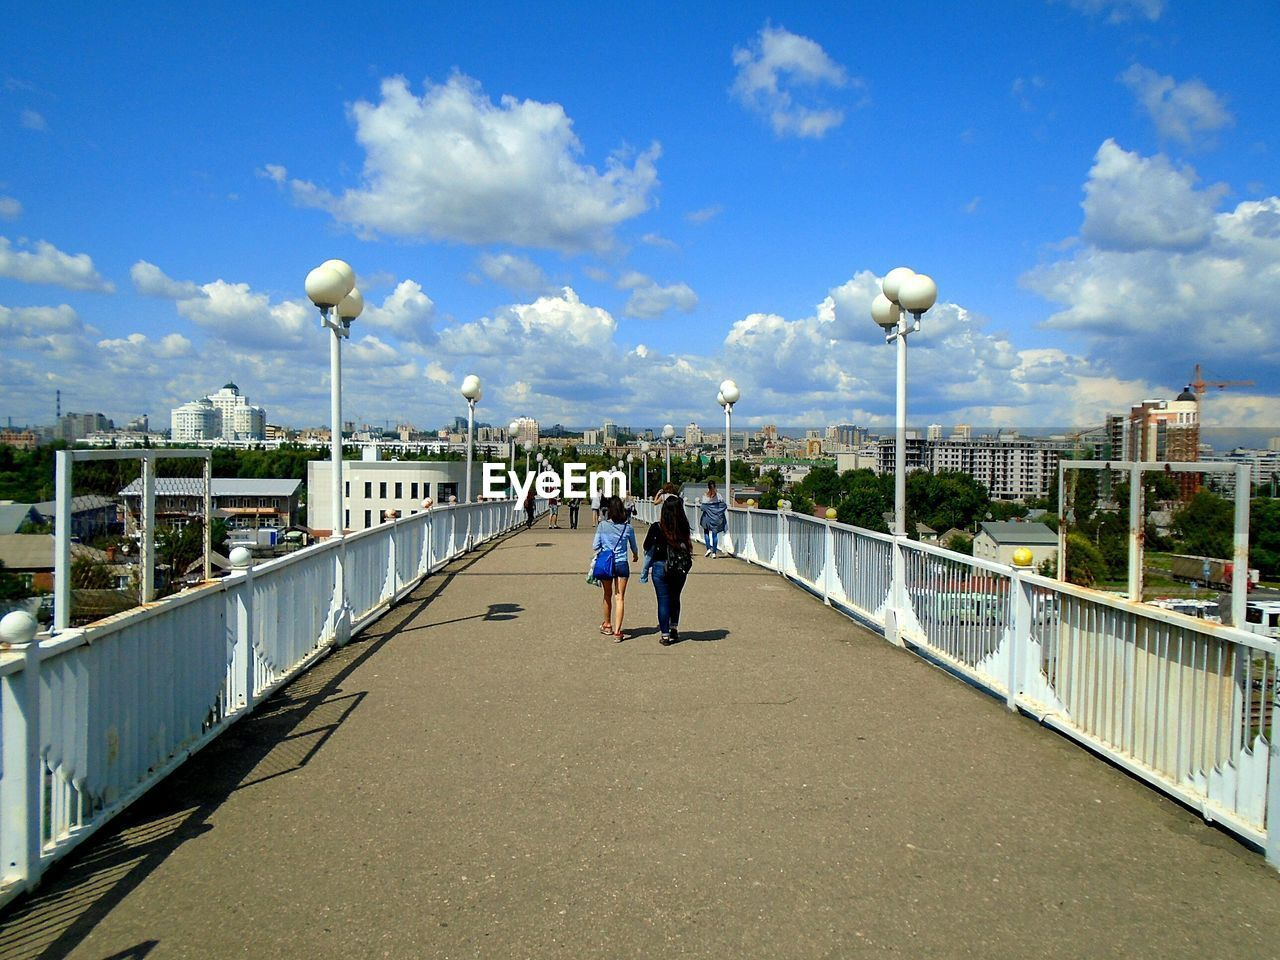 sky, real people, architecture, built structure, cloud - sky, lifestyles, two people, men, women, leisure activity, nature, adult, building exterior, people, full length, day, togetherness, rear view, street light, railing, bridge - man made structure, outdoors, diminishing perspective